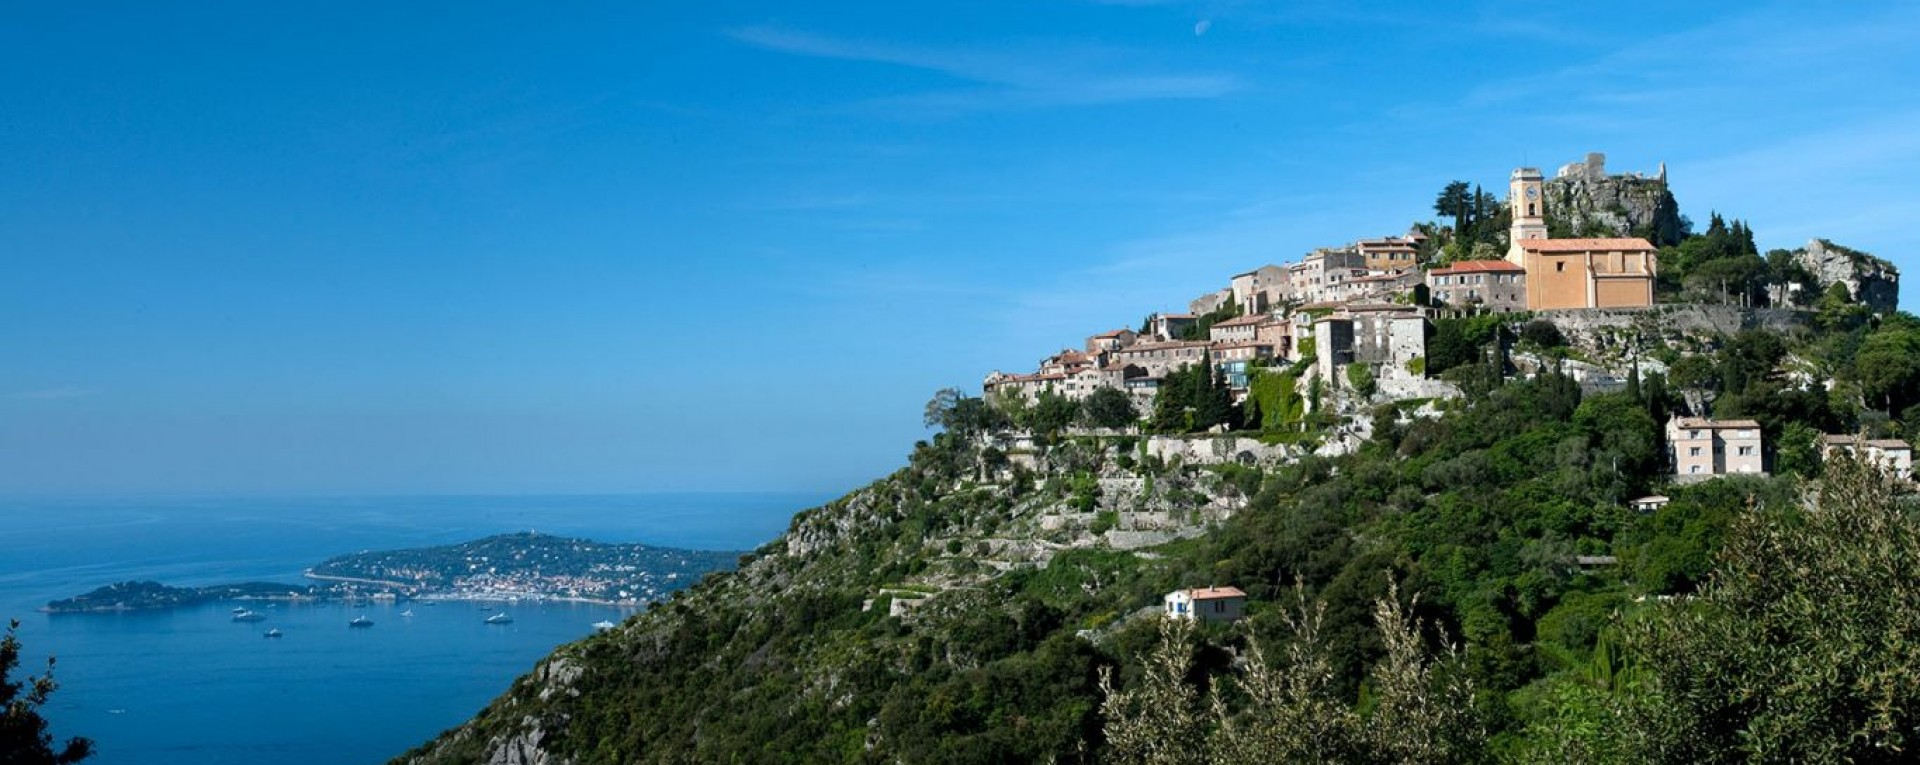 Le chateau de la chevre d 39 or hotel cote d 39 azur france for Cafe du jardin eze